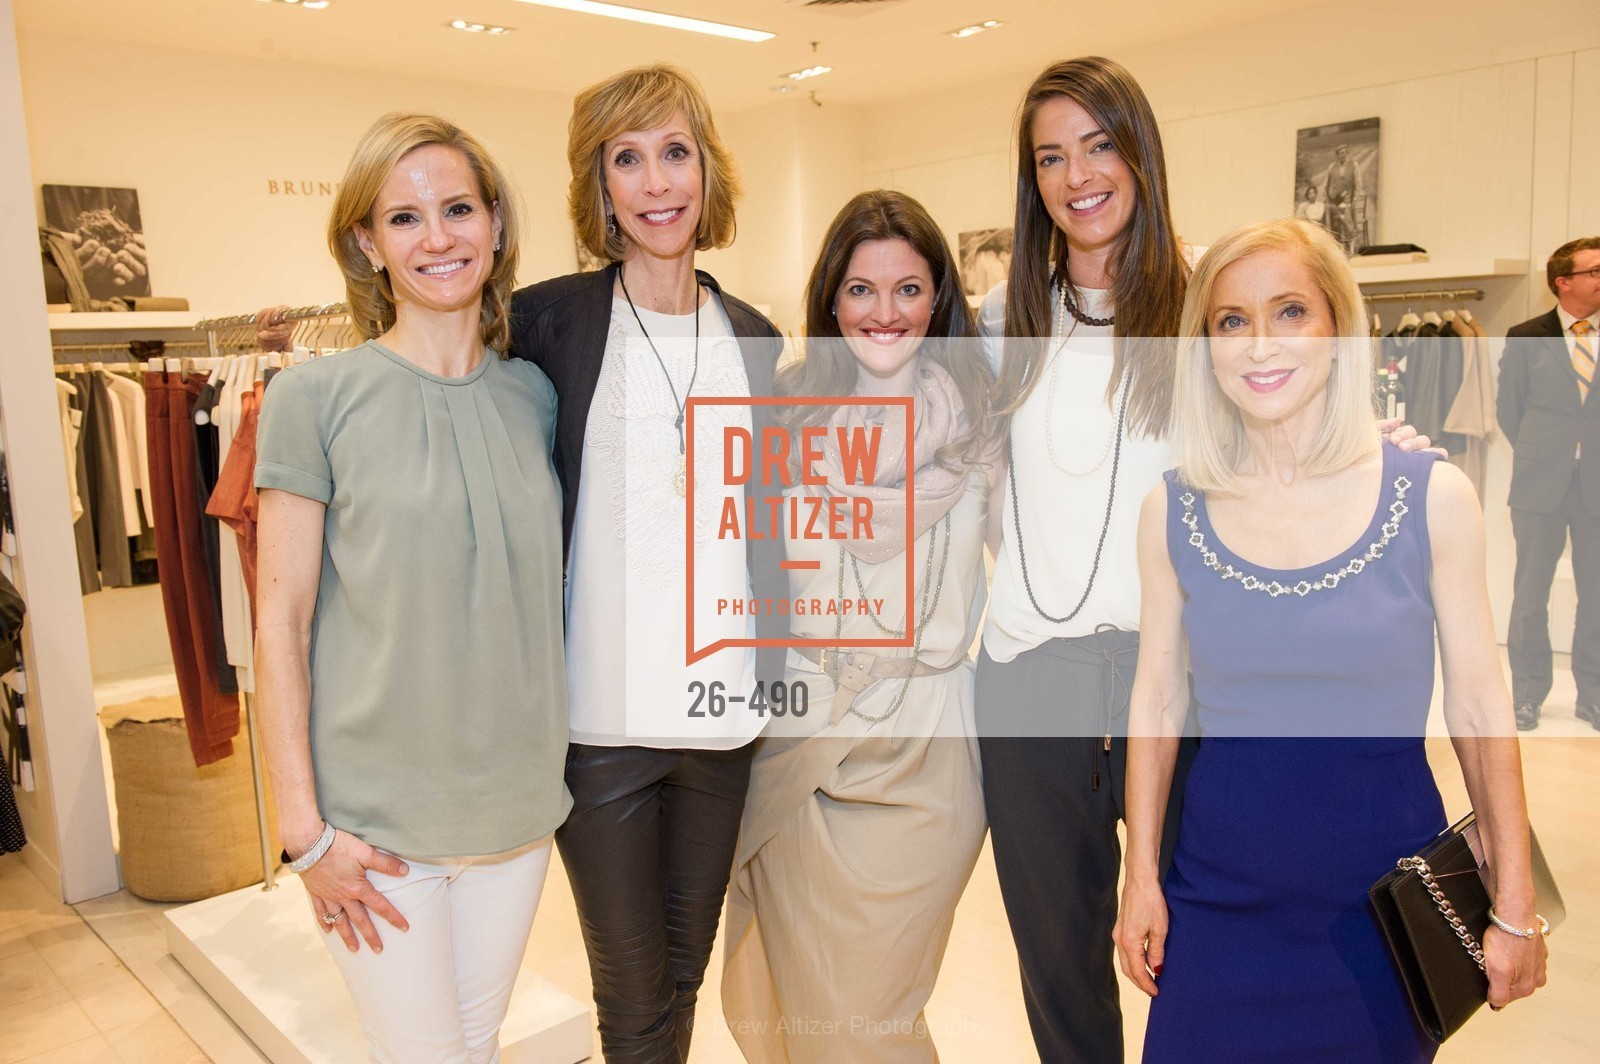 Anne Marie Peterson, Nancy Kukacka, Alicia Sabella, Samantha Wood, Shelley Gordon, Nancy Kukacka Hosts Brunello Cucinelli at SAKS FIFTH AVENUE Benefitting New Door Ventures, US. The Battery, April 2nd, 2014,Drew Altizer, Drew Altizer Photography, full-service agency, private events, San Francisco photographer, photographer california